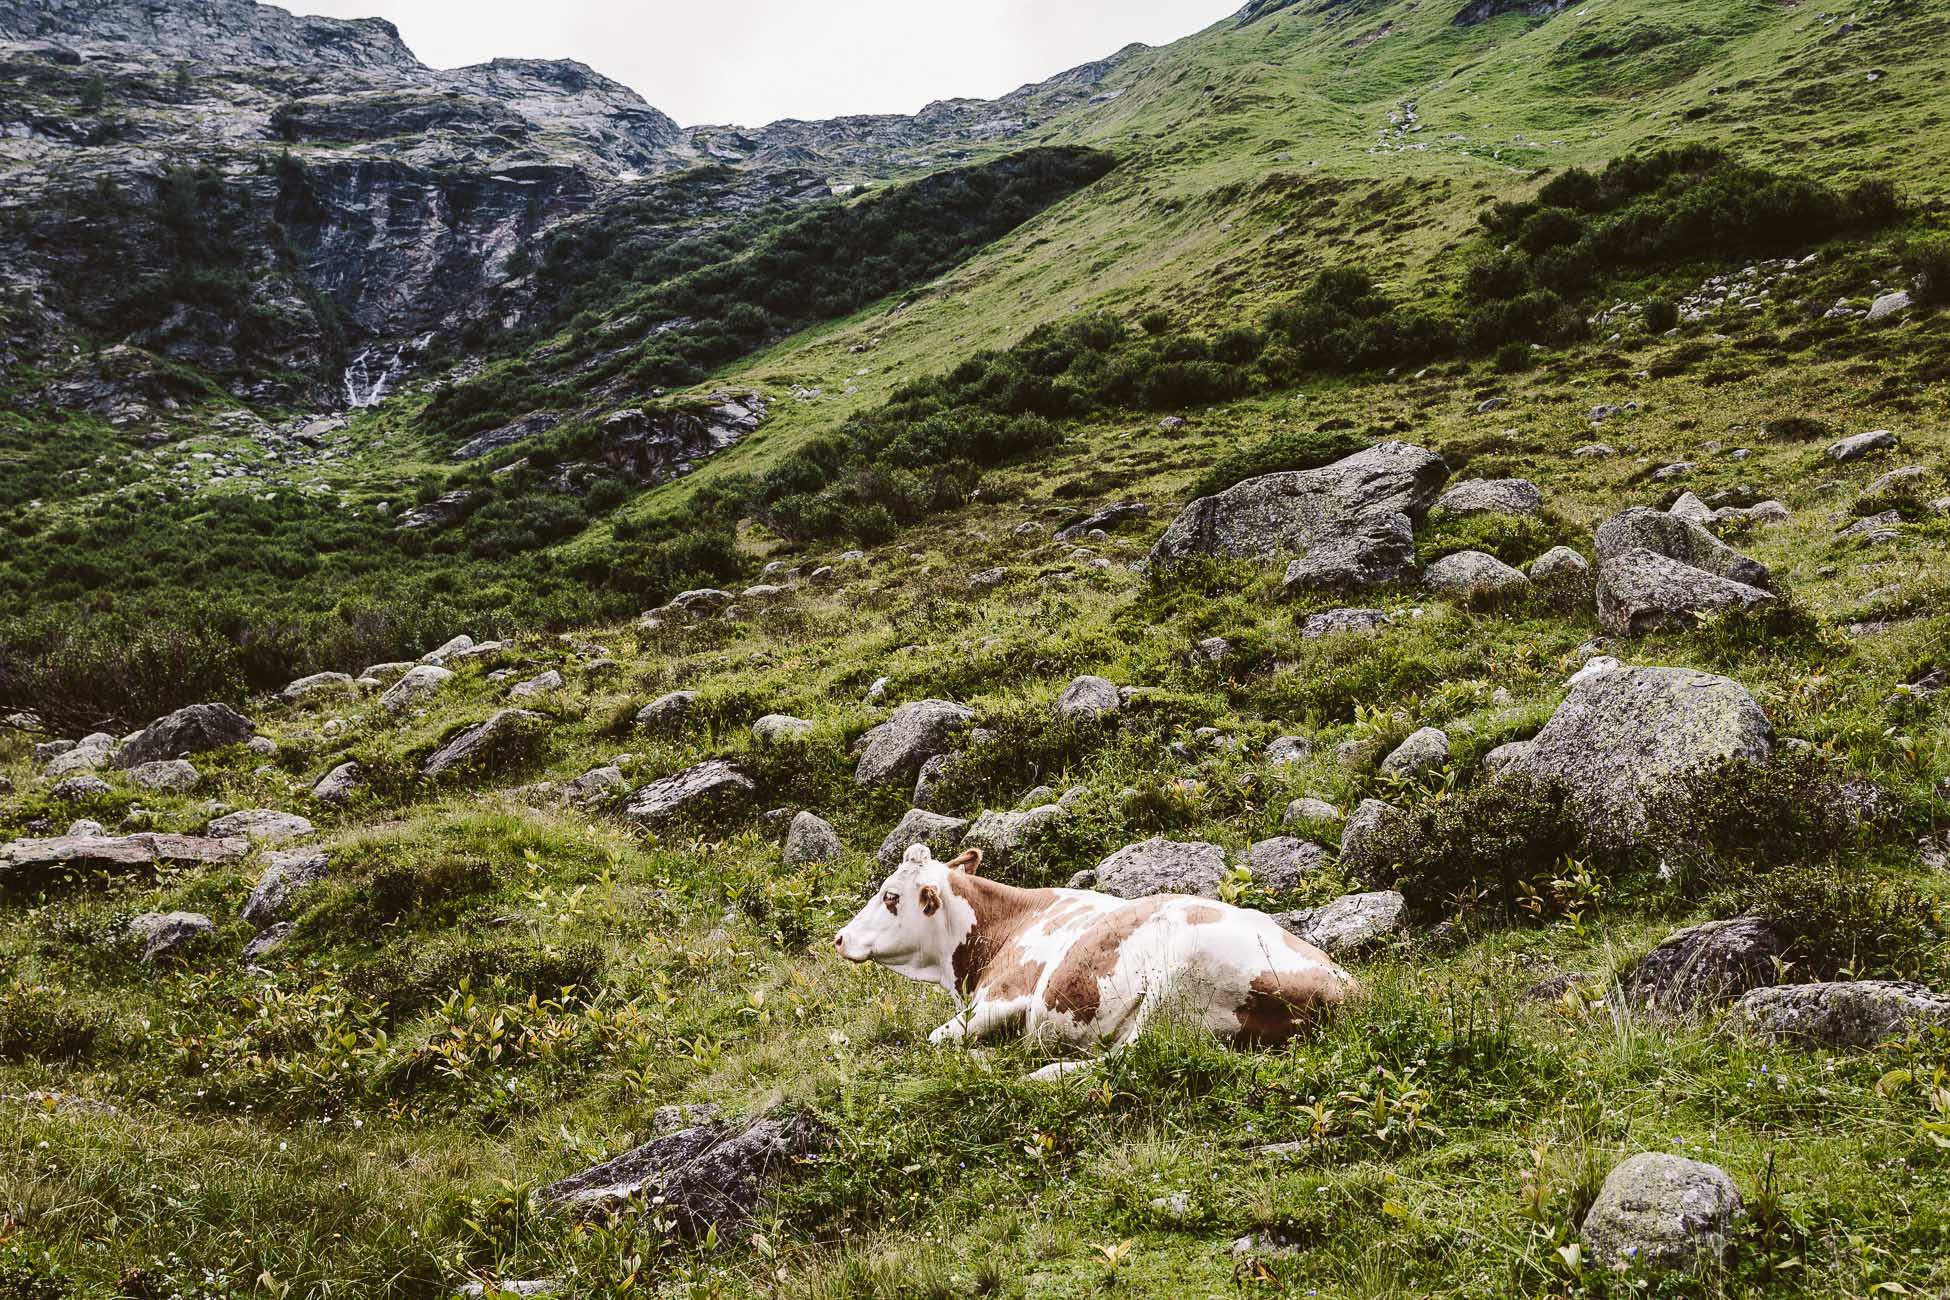 A cow at National Park Hohe Tauern